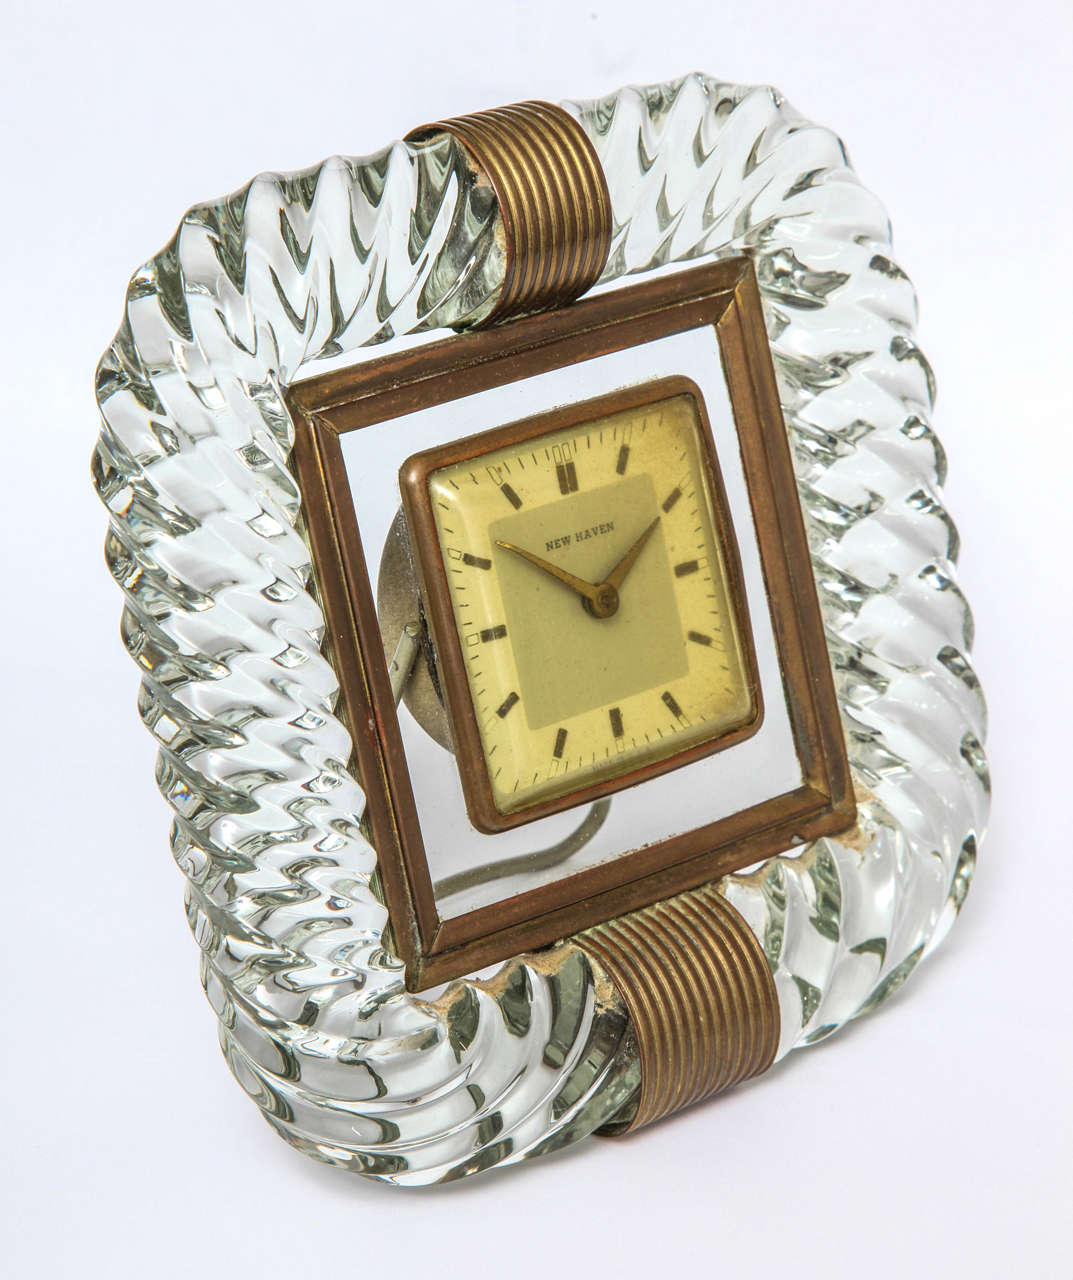 Elegant twisted rope form frame in colorless glass with brass accents. Unsigned but attributed to Venini.